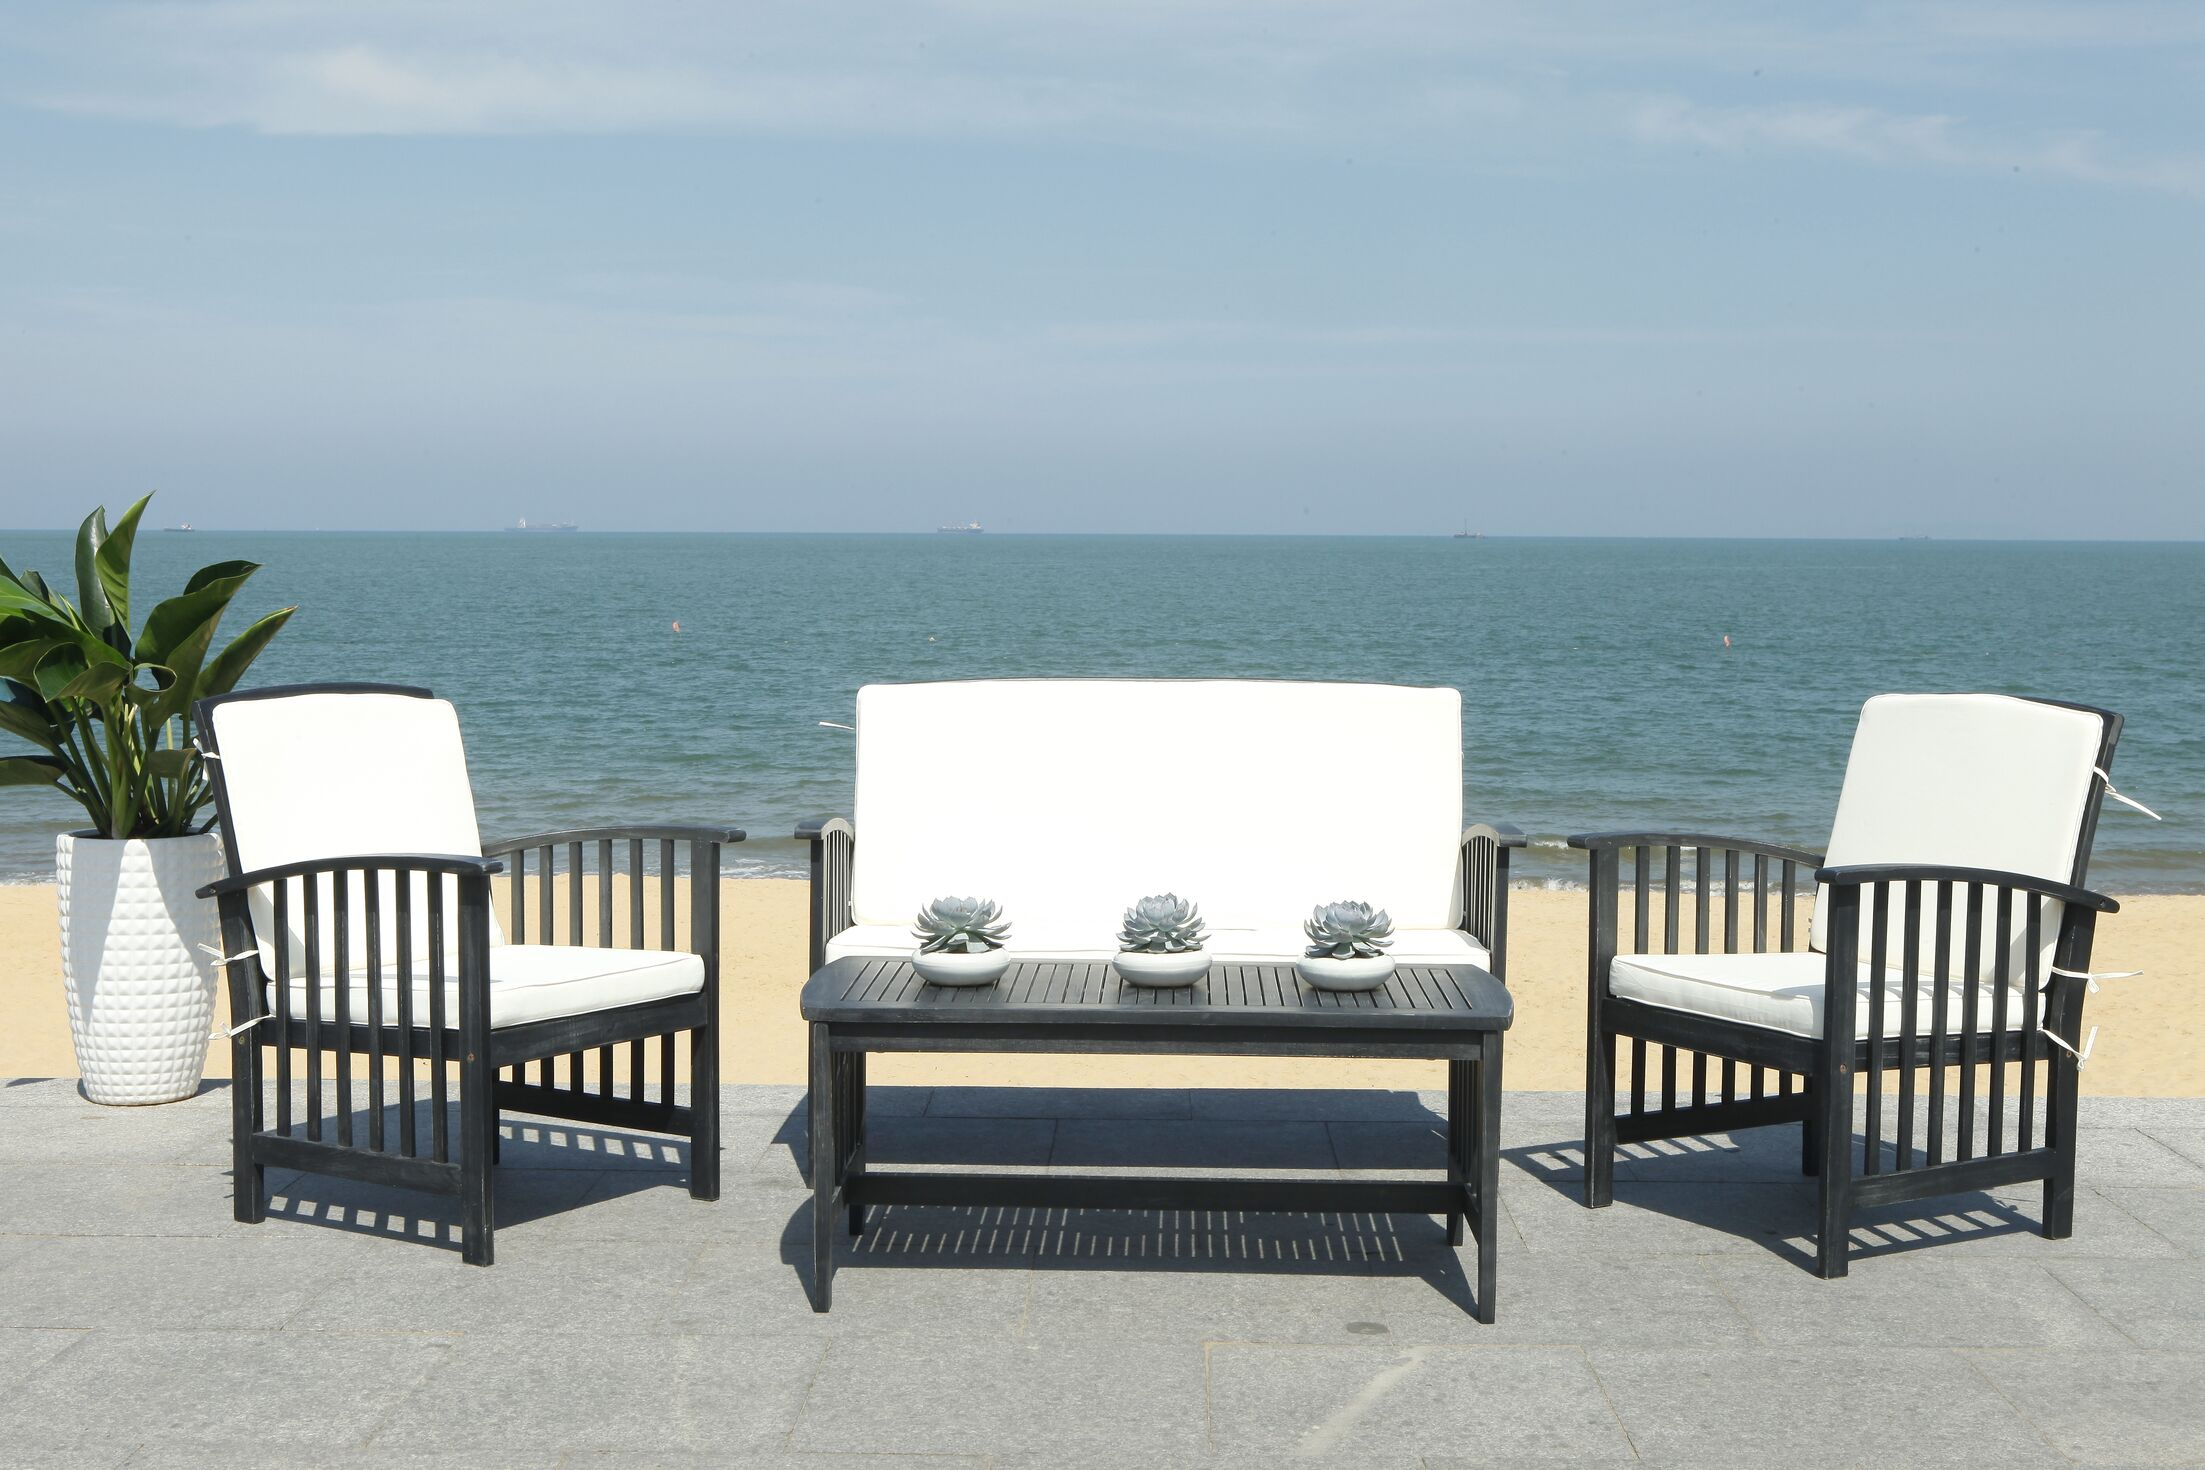 Simmons Outdoor 4 Piece Sofa Seating Group with Cushions